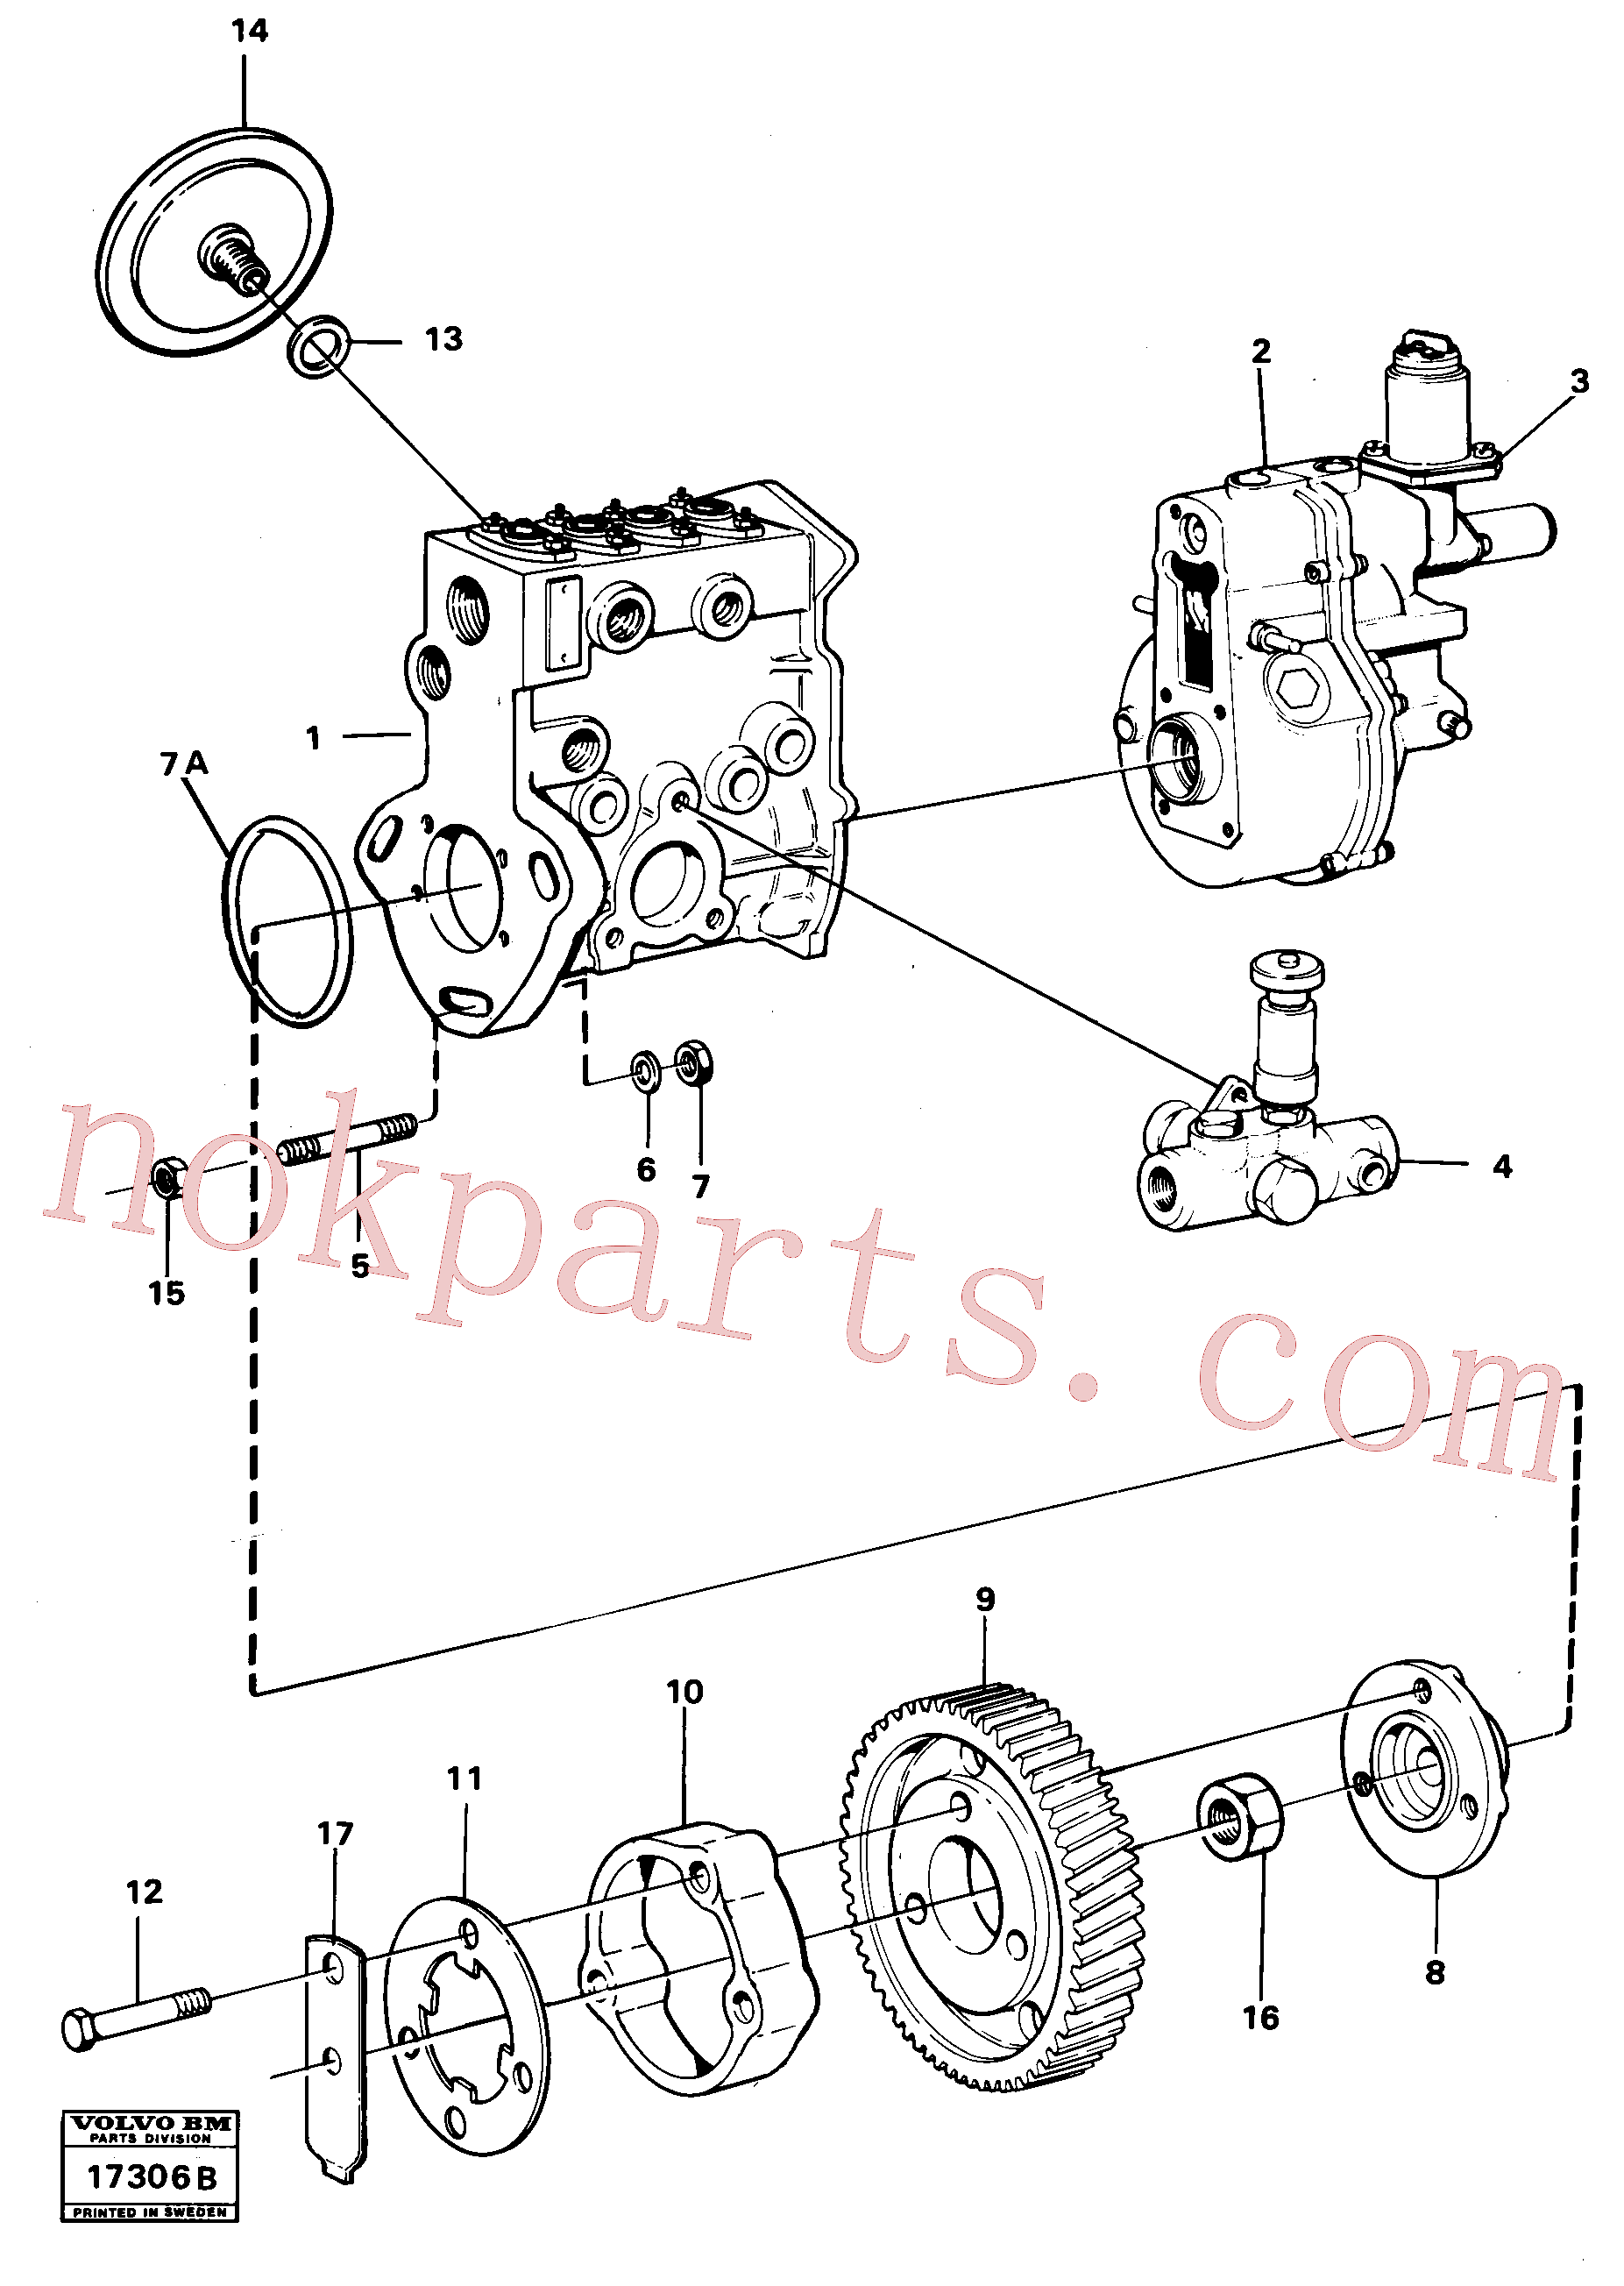 VOE942336 for Volvo Fuel injection pump with fitting parts(17306B assembly)